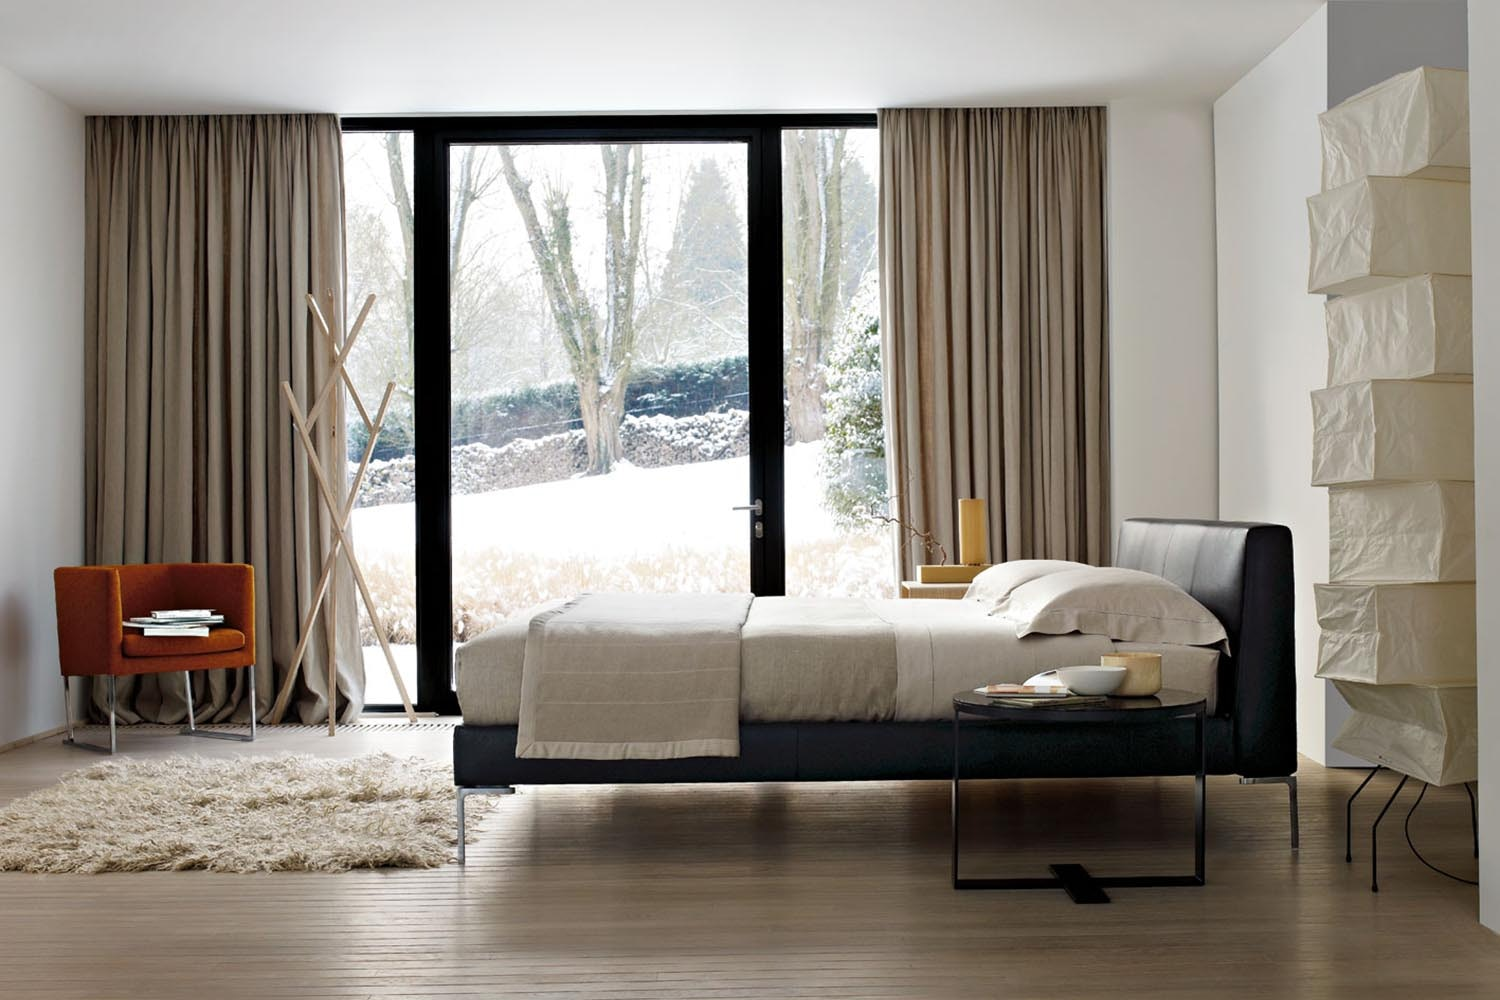 Charles Bed in Fabric by Antonio Citterio for B&B Italia